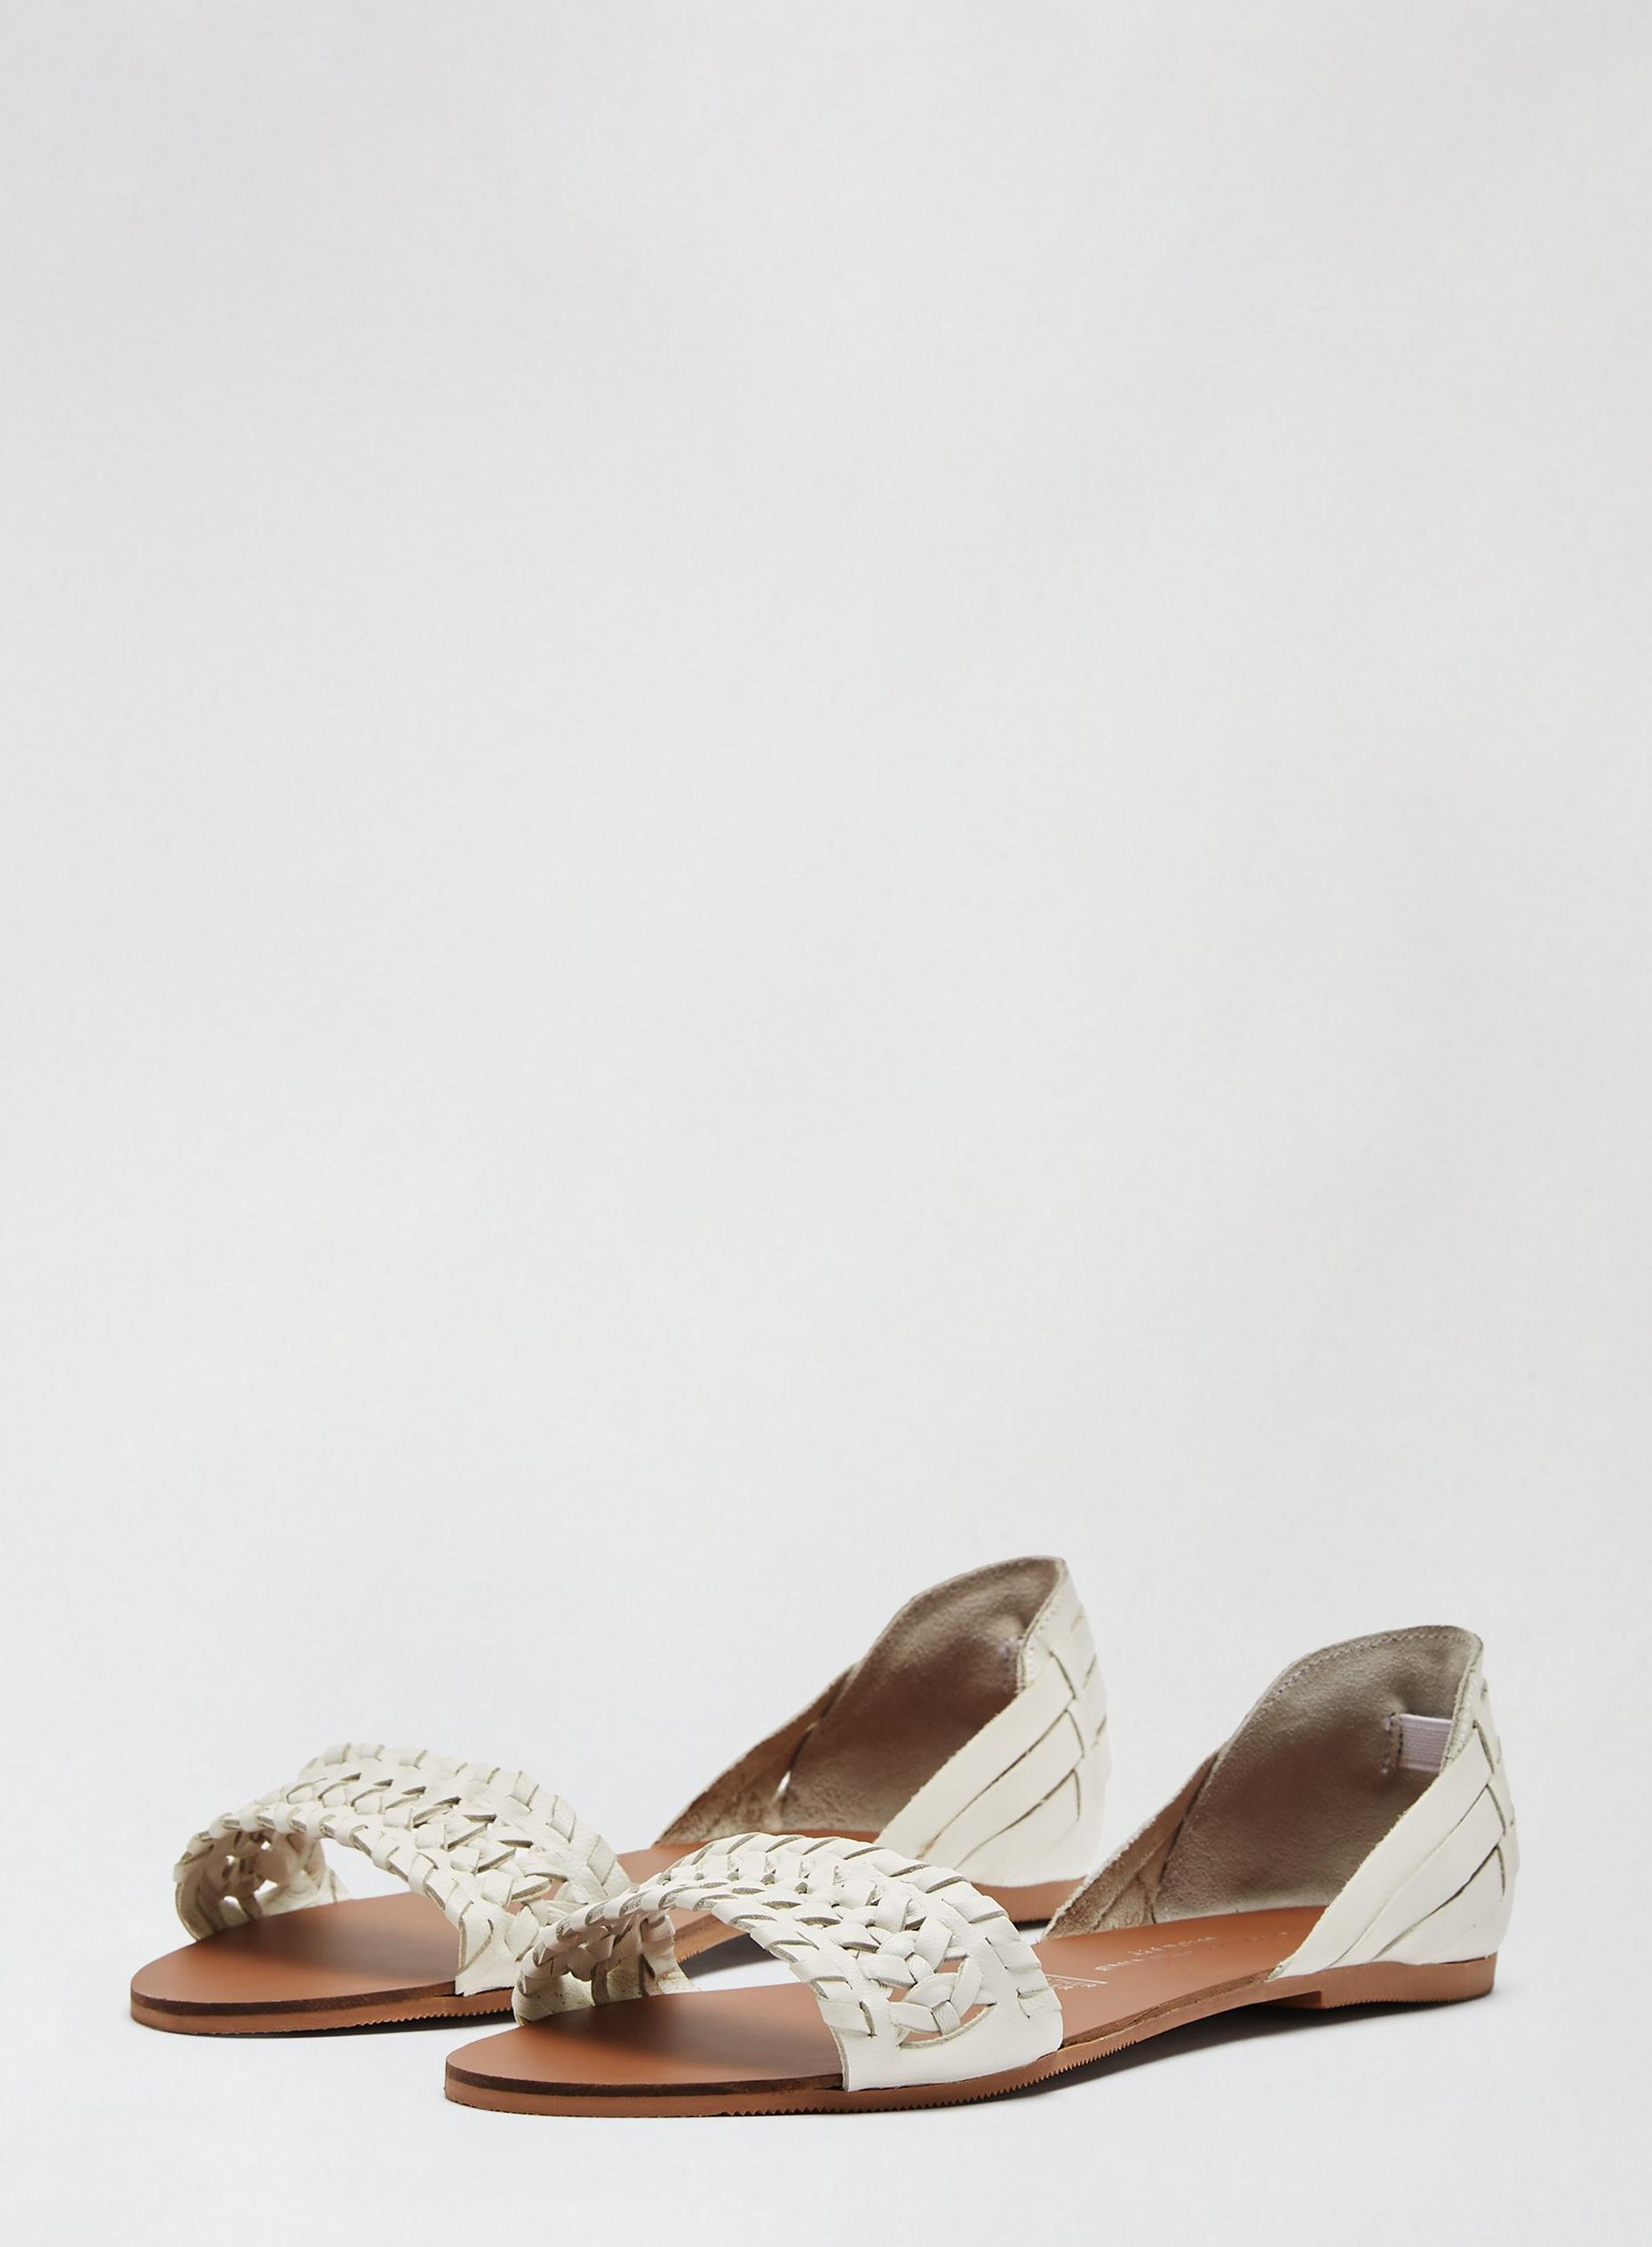 Wide Fit White Leather Jingly Sandals